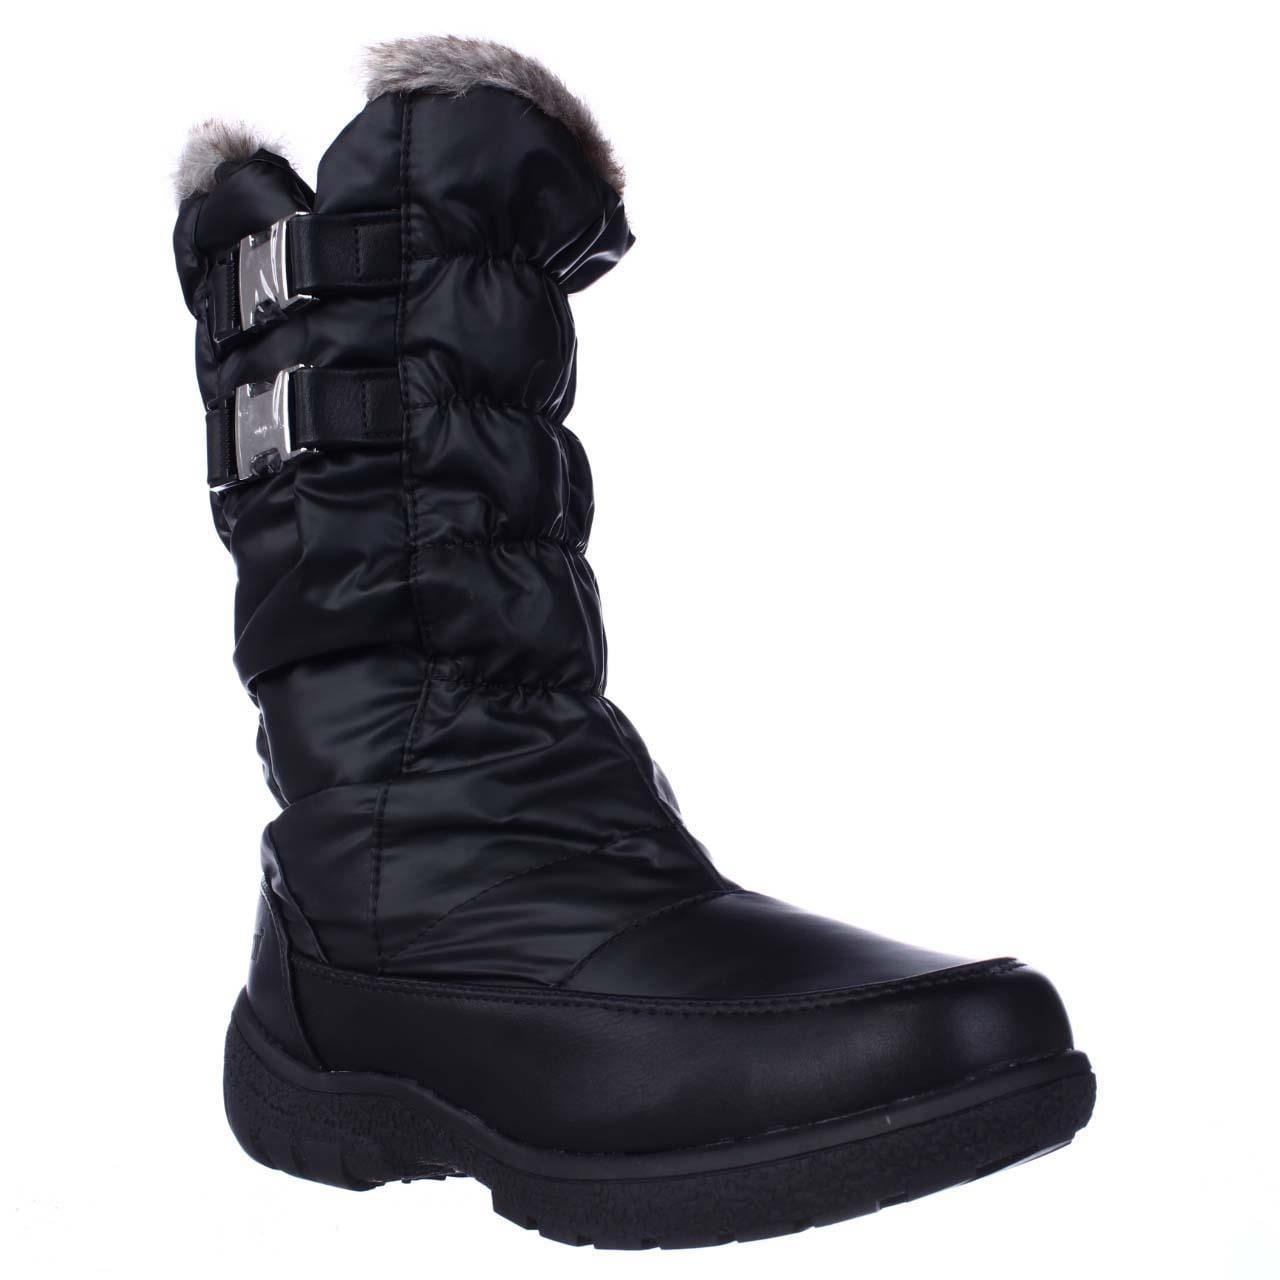 1f9cf7c3ca7 Buy Snow Women's Boots Online at Overstock | Our Best Women's Shoes ...